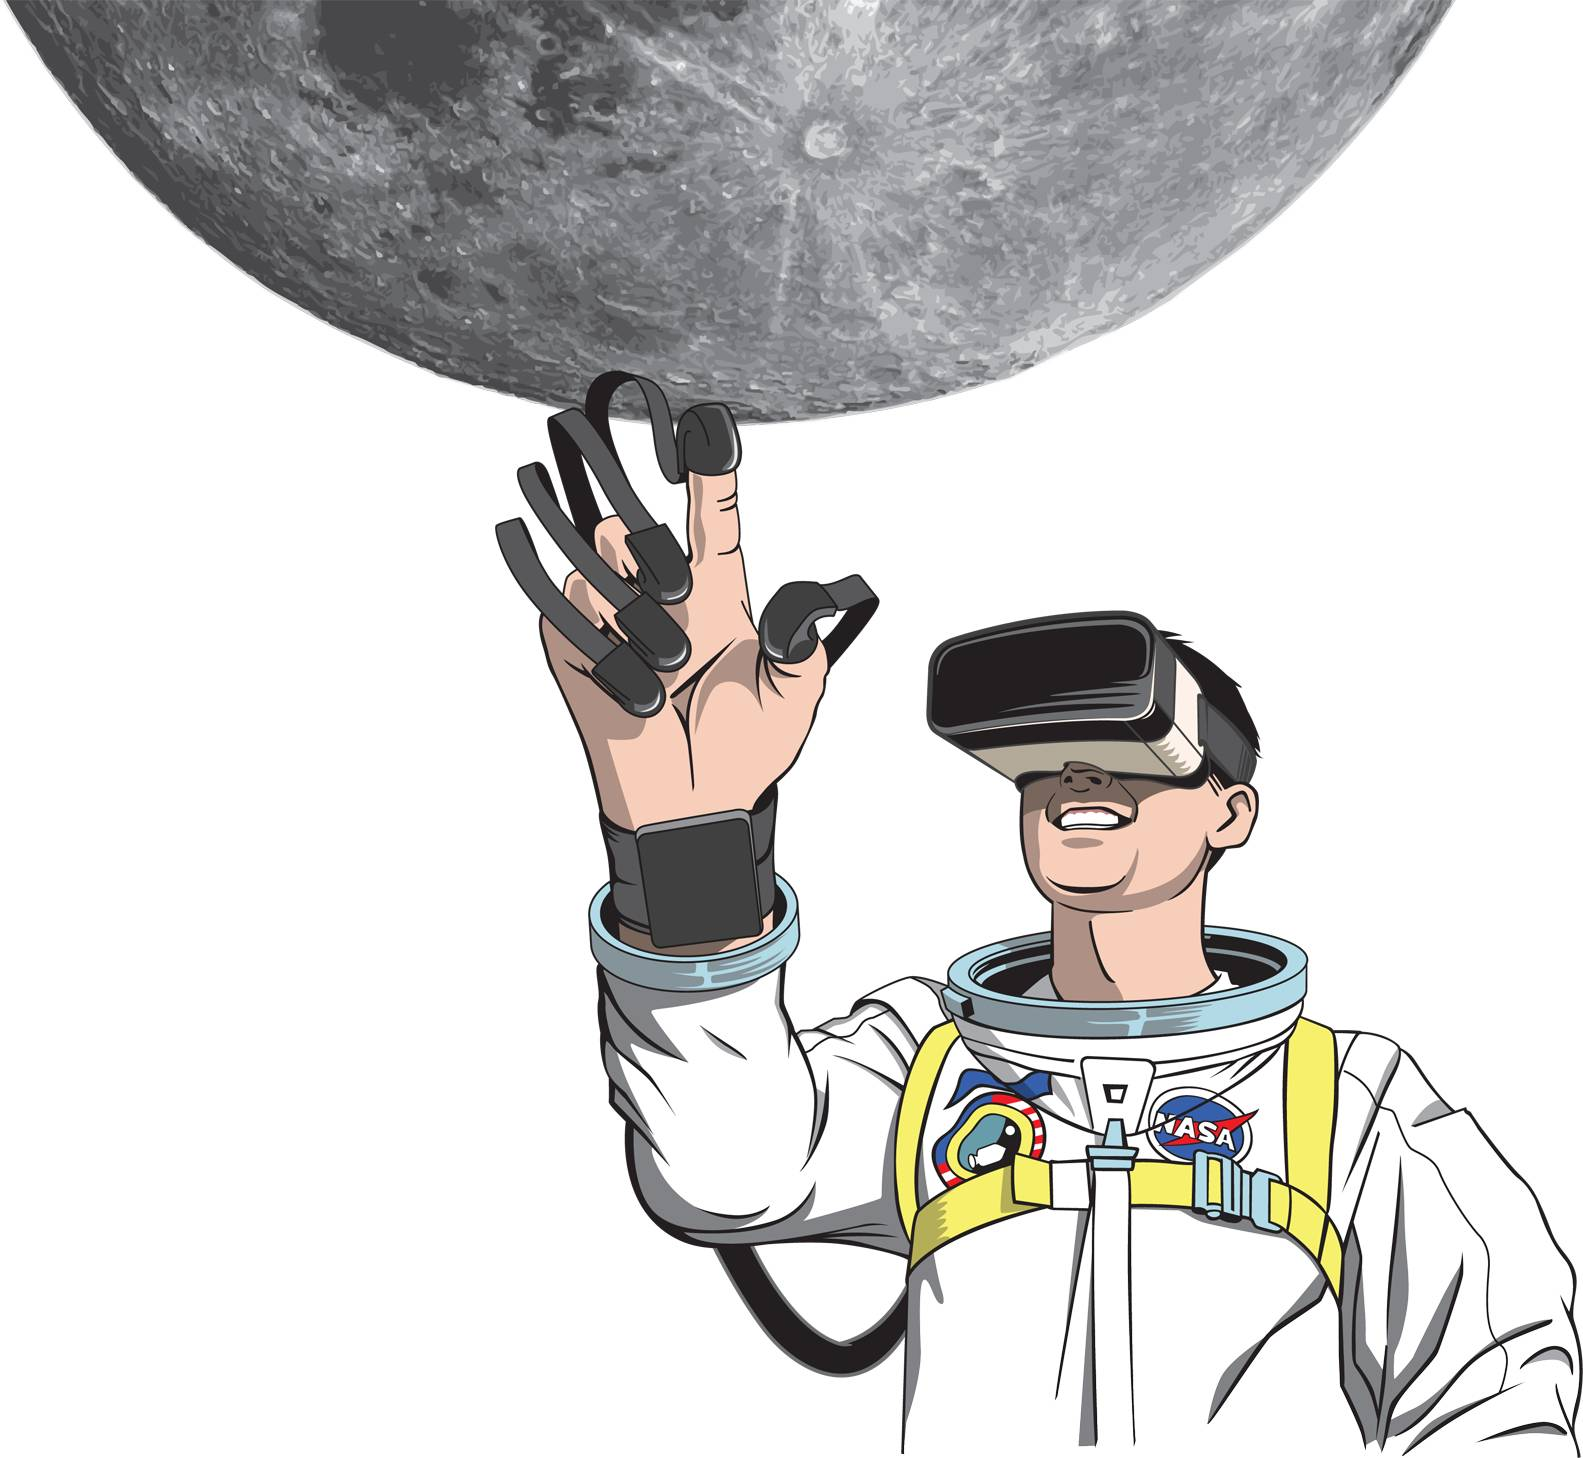 Chaffee in VR goggles reaches for the Moon